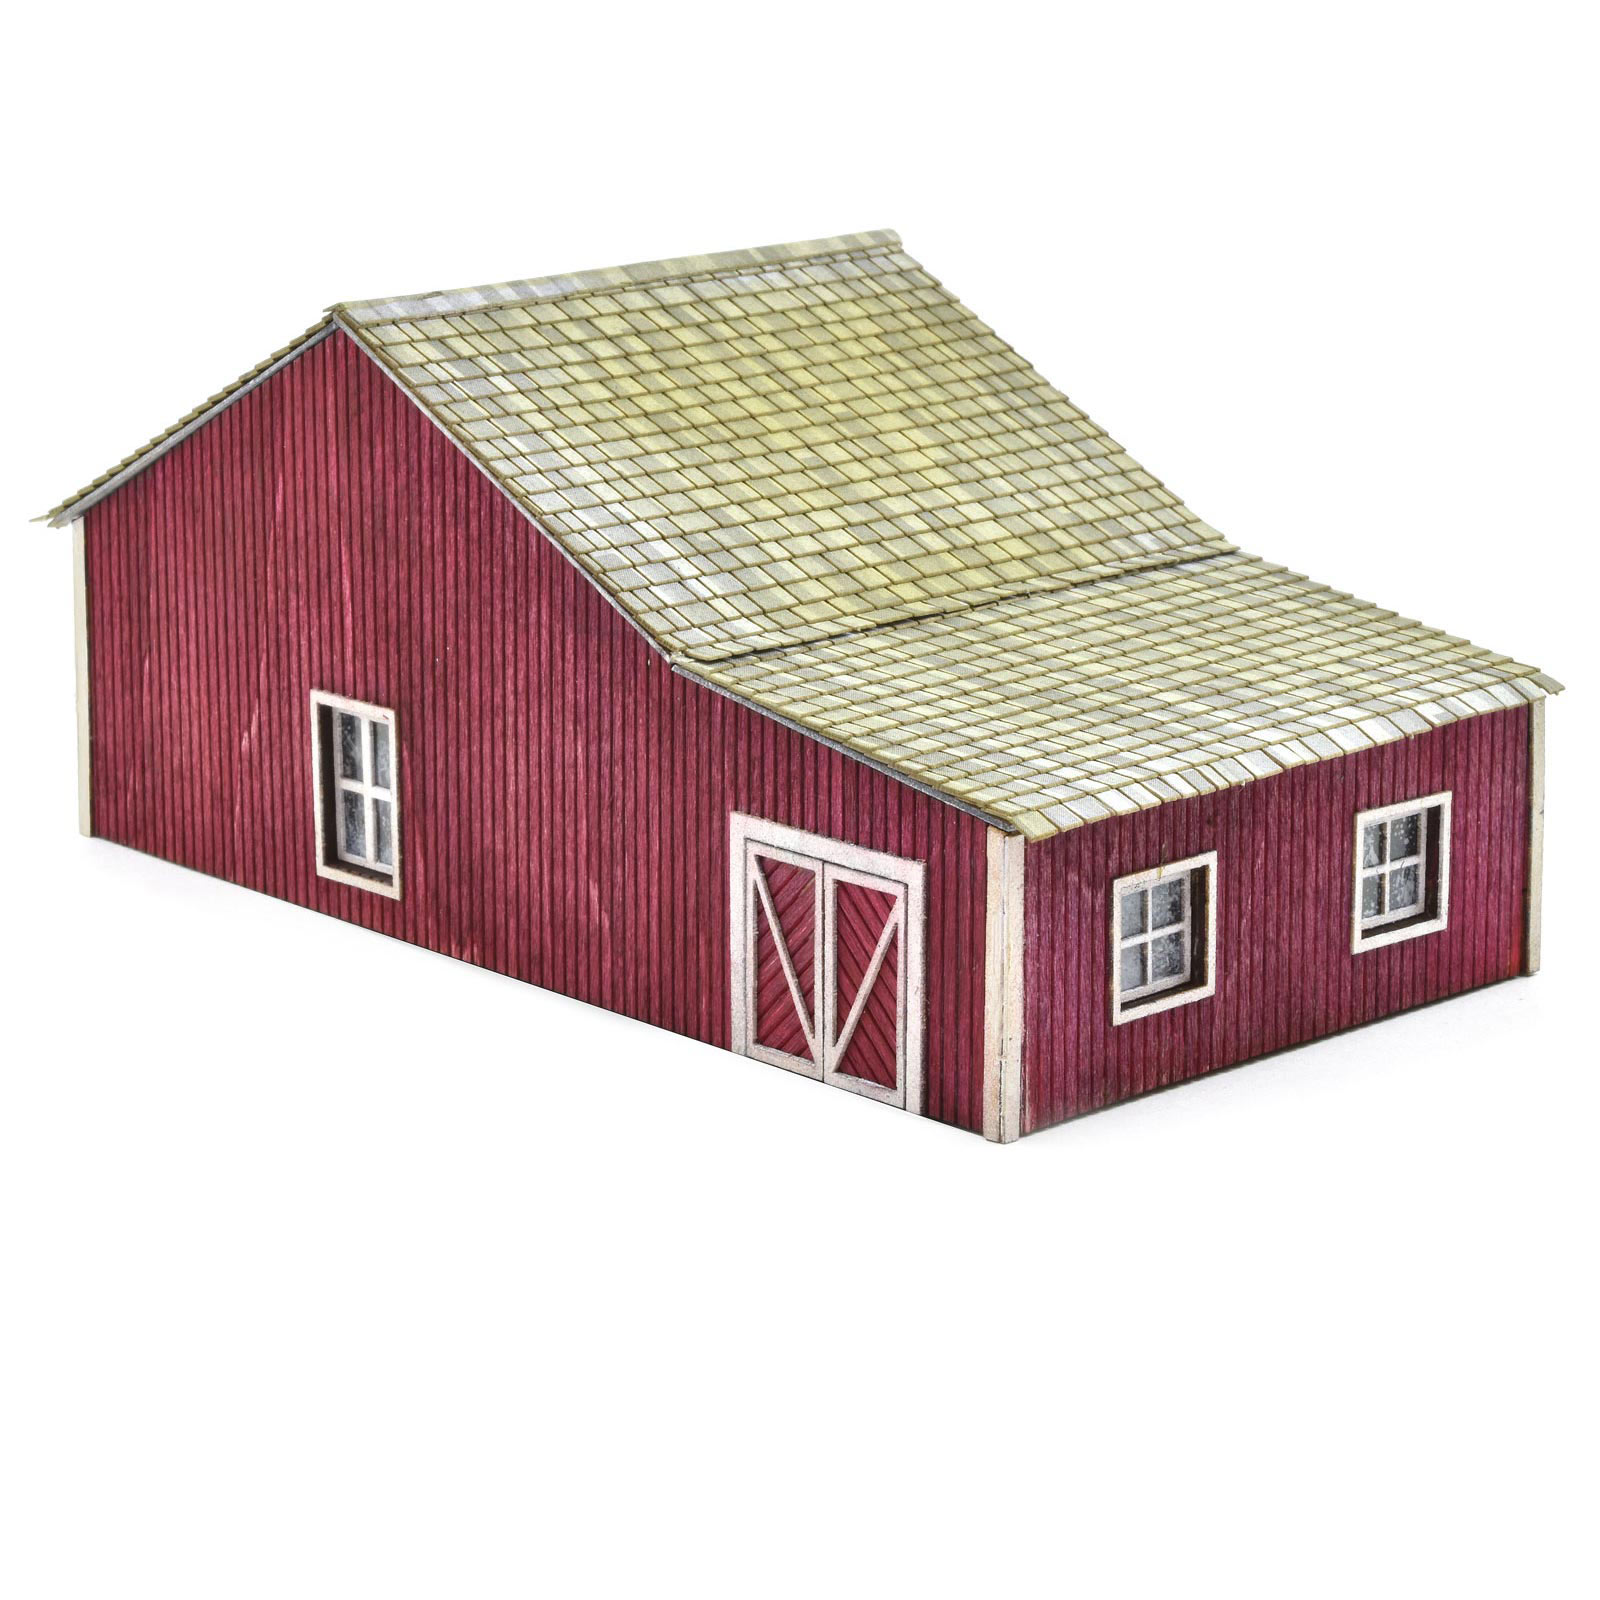 HO scale, Horse Stable